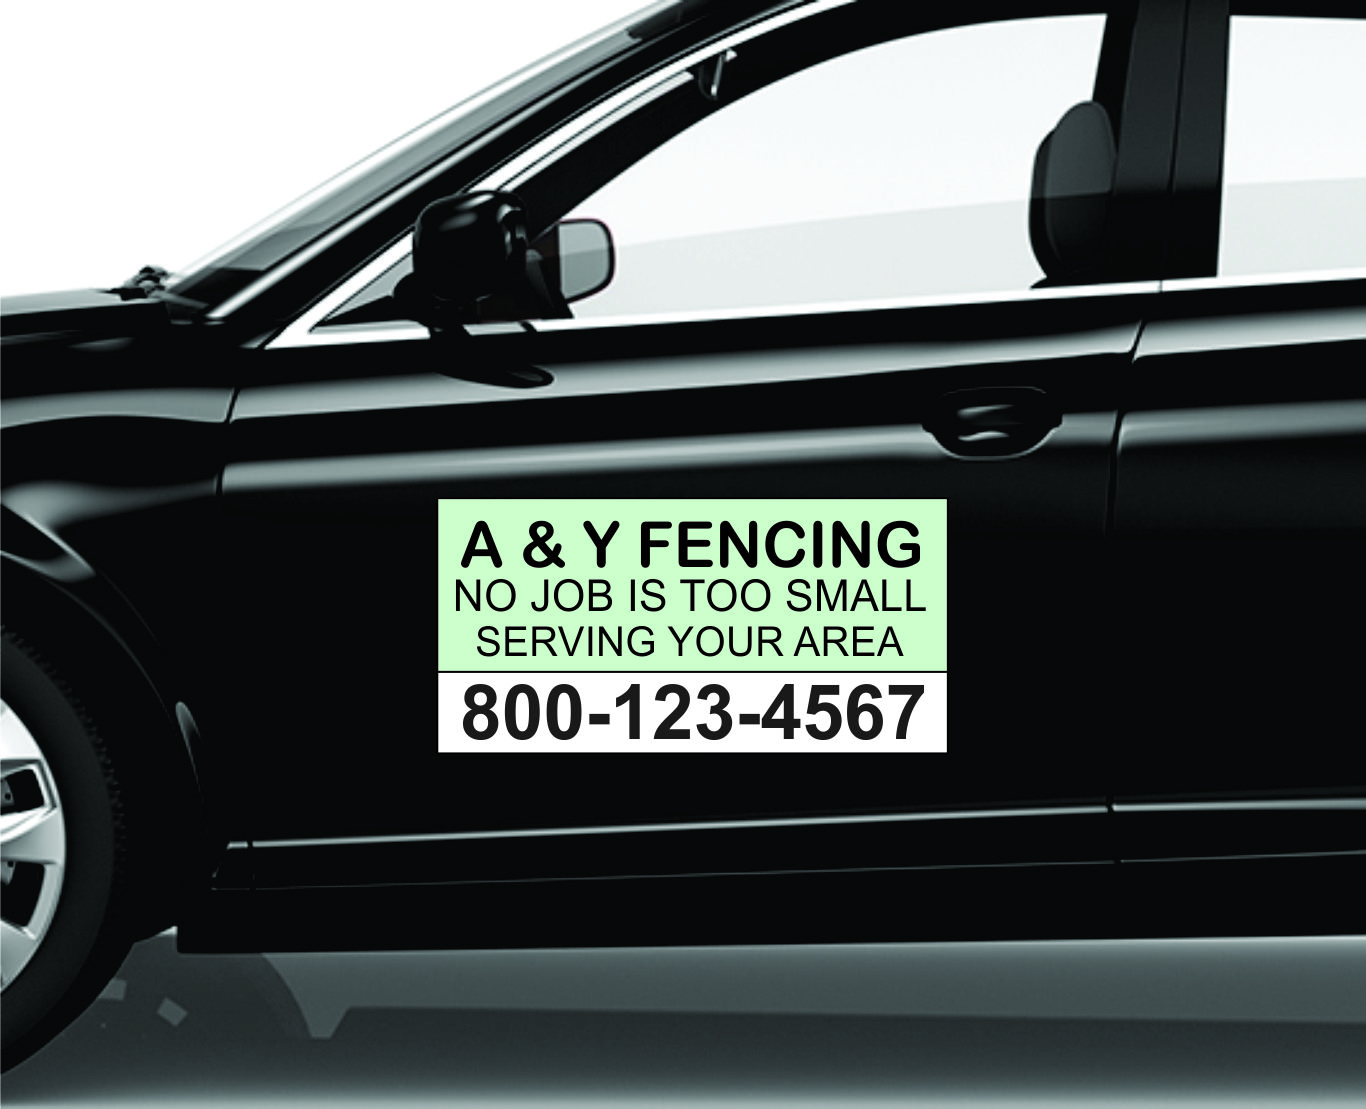 K-9 Security Black Car Door Magnets Magnetic Signs-Qty 2